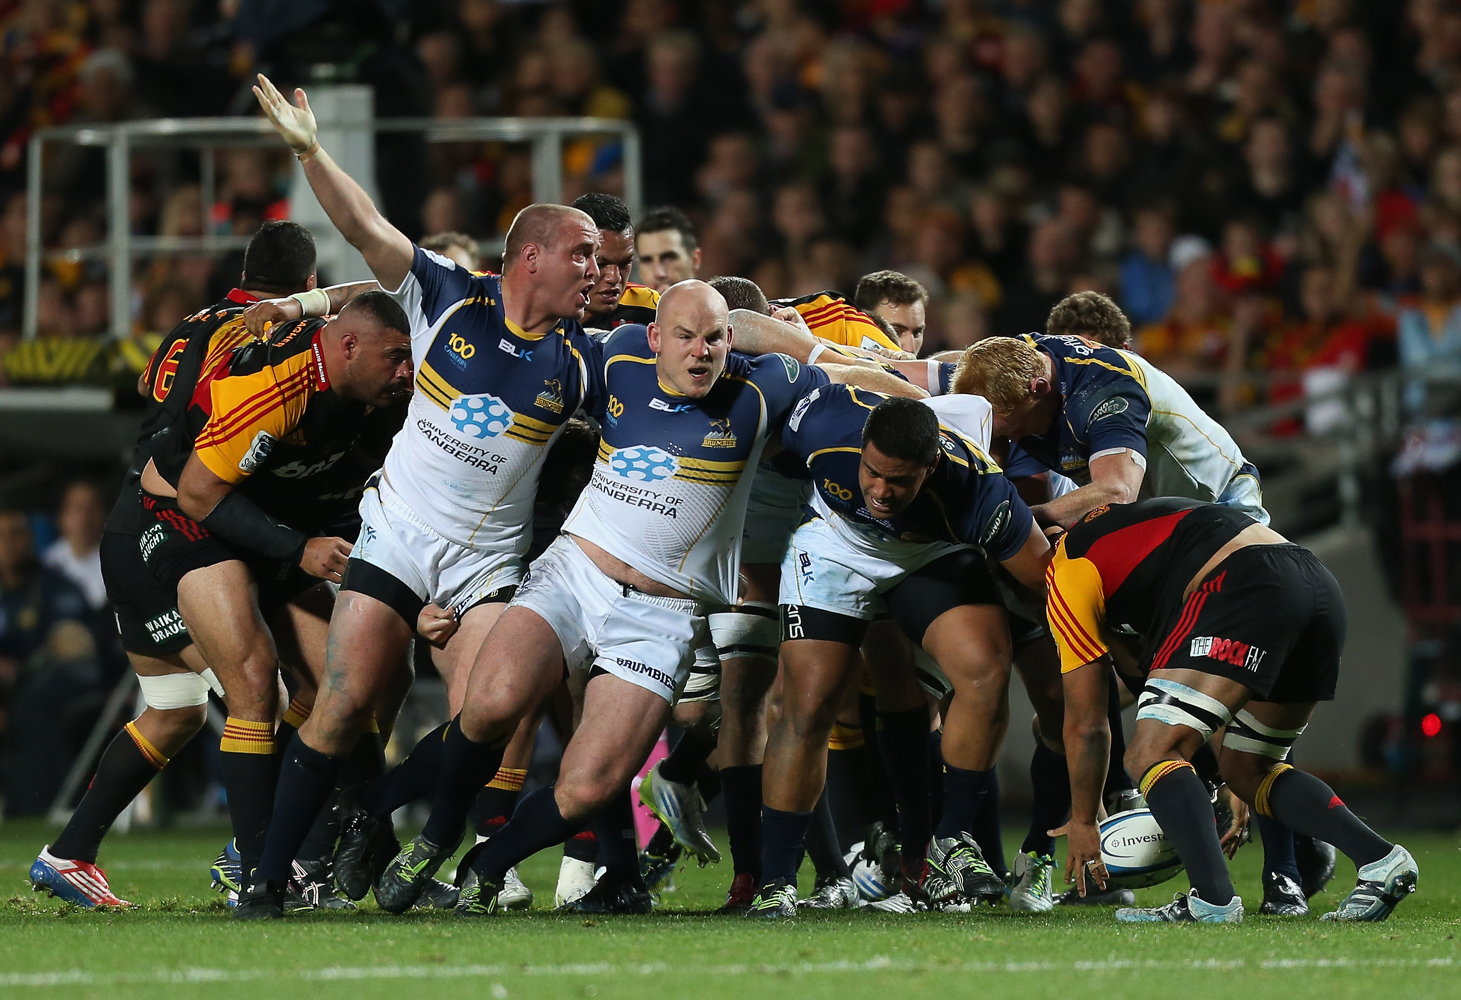 Gallery. Reasons to watch Super Rugby. Rd 2.